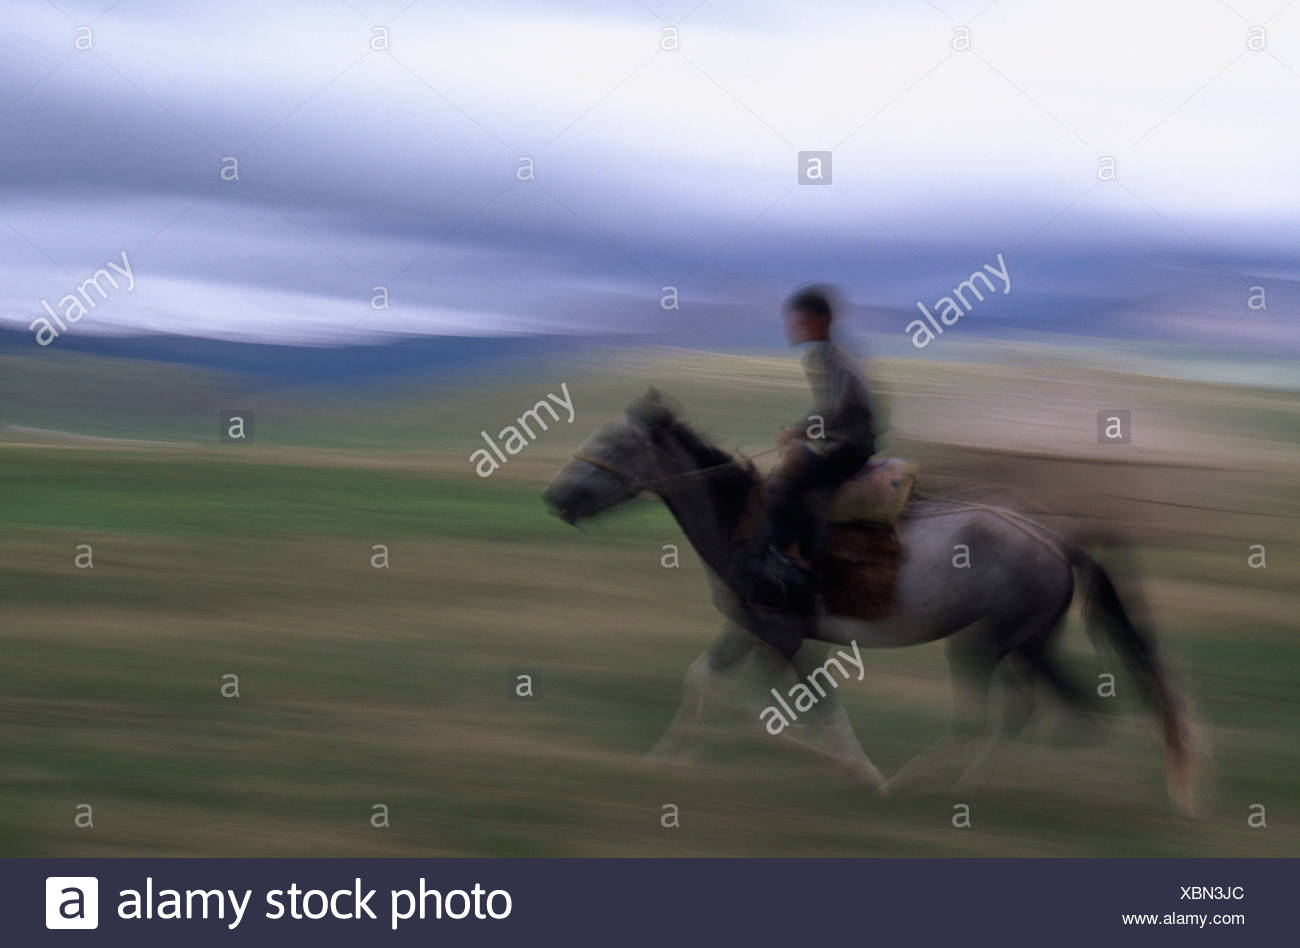 Nomad boy riding a horse, Song-Kul, Kyrgyzstan, Central Asia - Stock Image